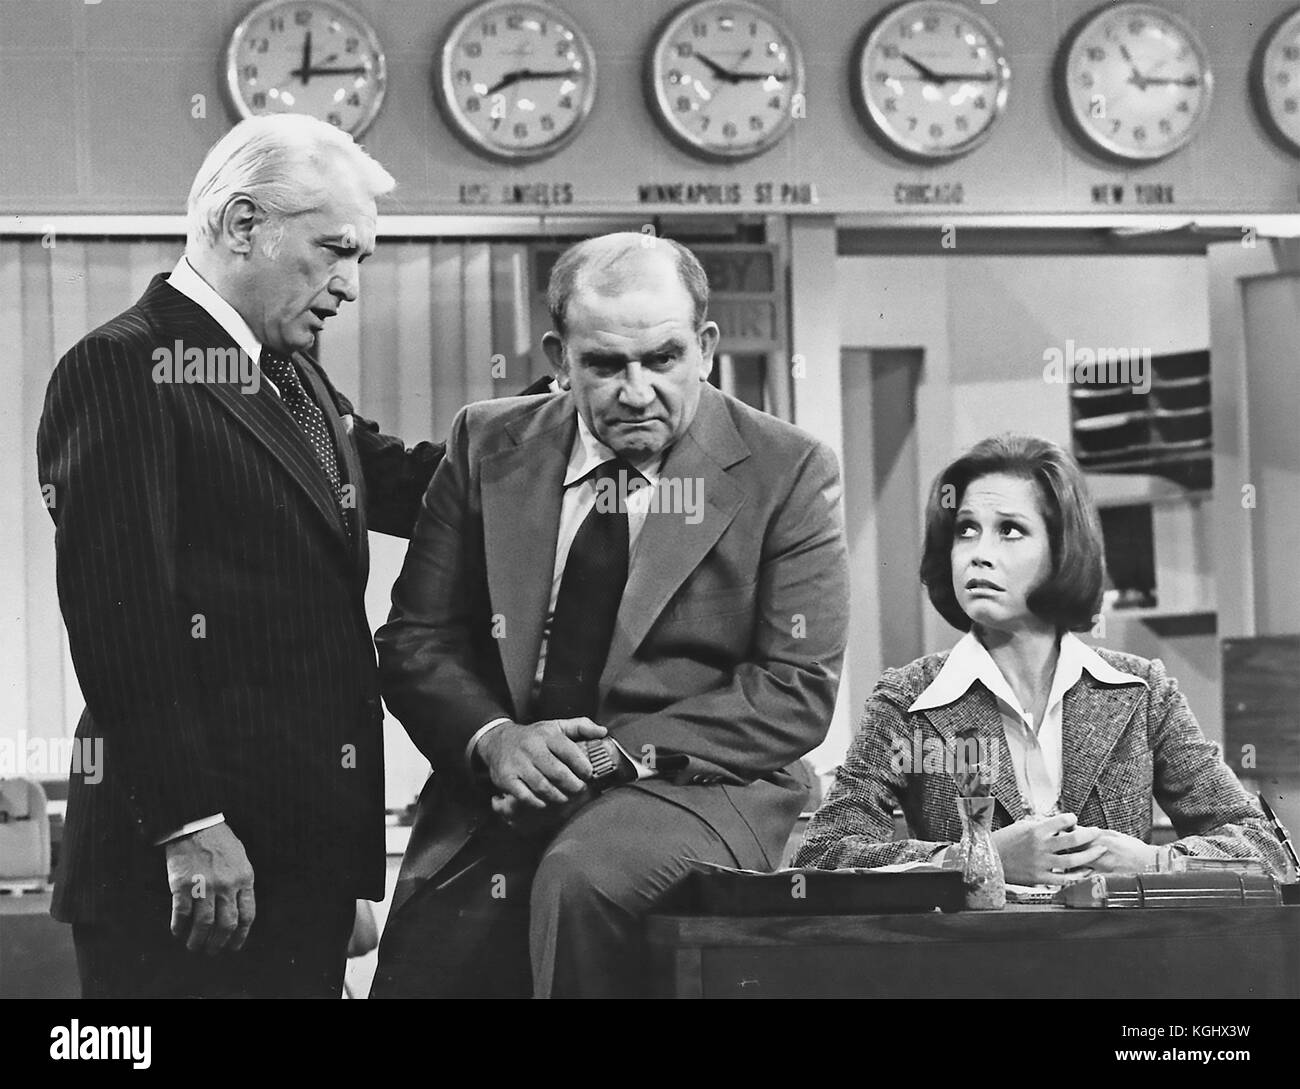 MARY TYLER MOORE SHOW CBS TV sitcom 1970-1977 with from left: Ted Knight, Ed Asner, Mary Tyler Moore - Stock Image